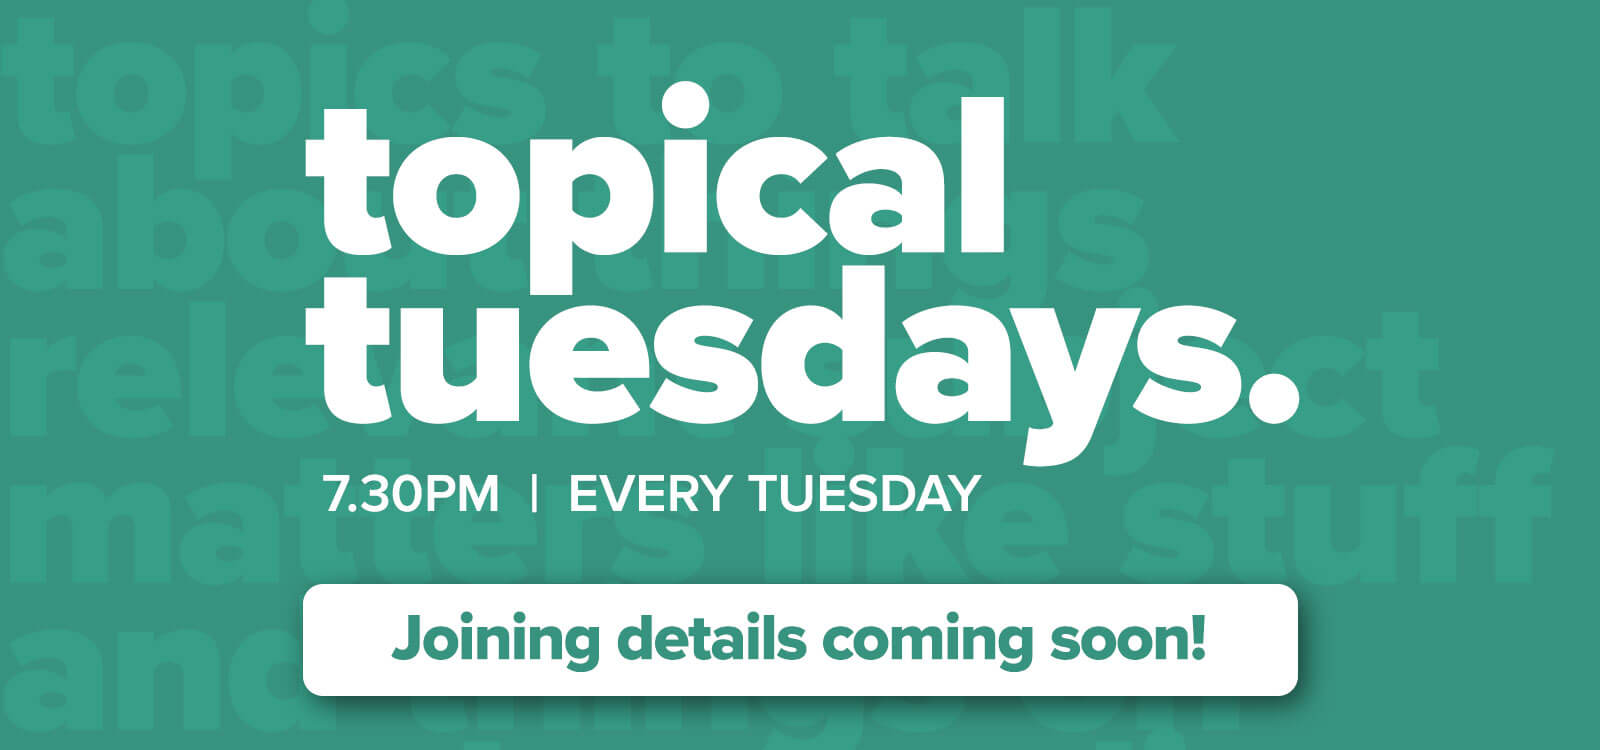 Join us for Topical Tuesday!